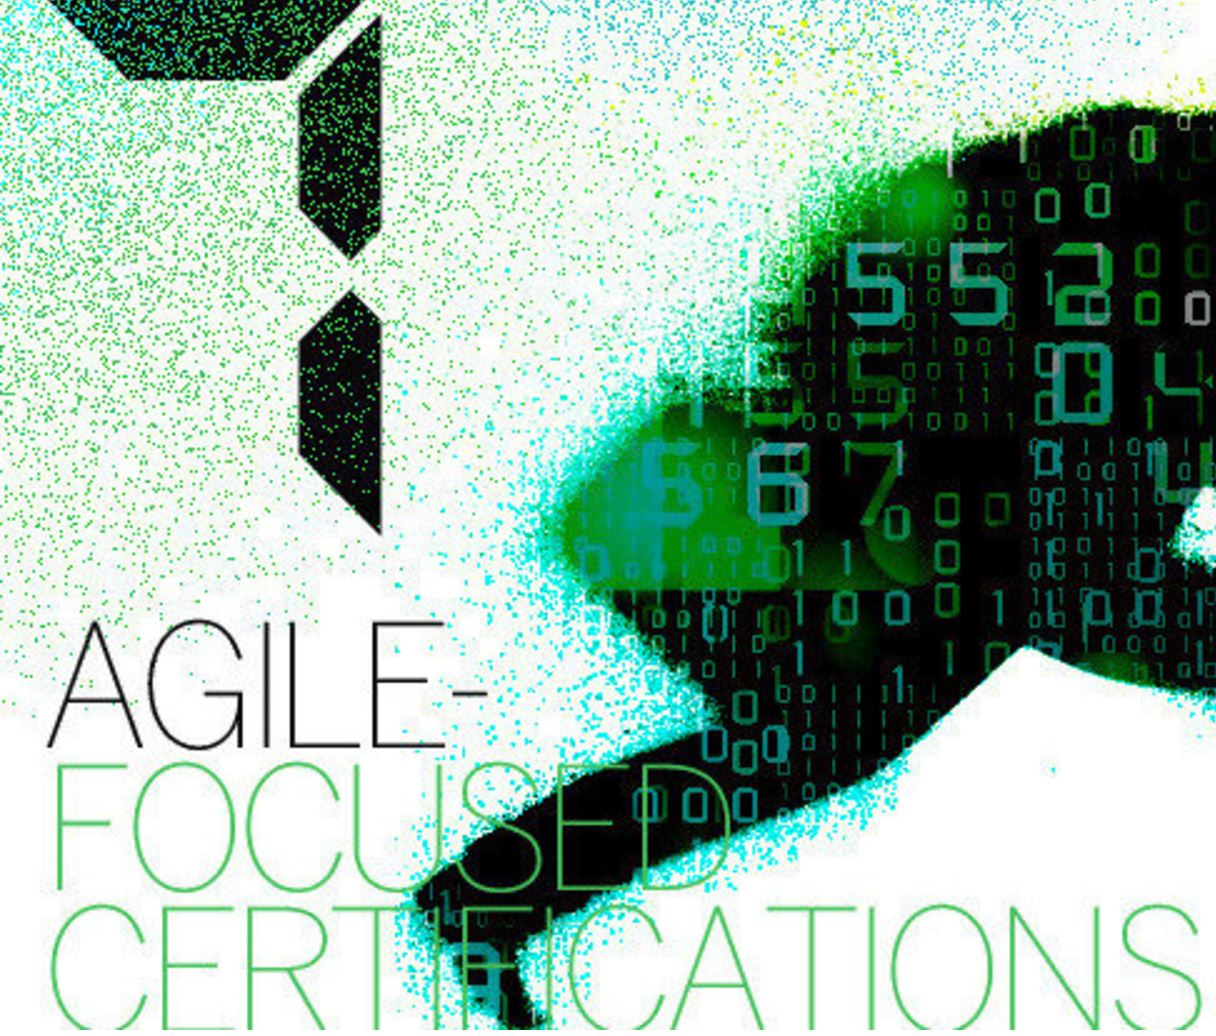 7agile-certifications.jpg